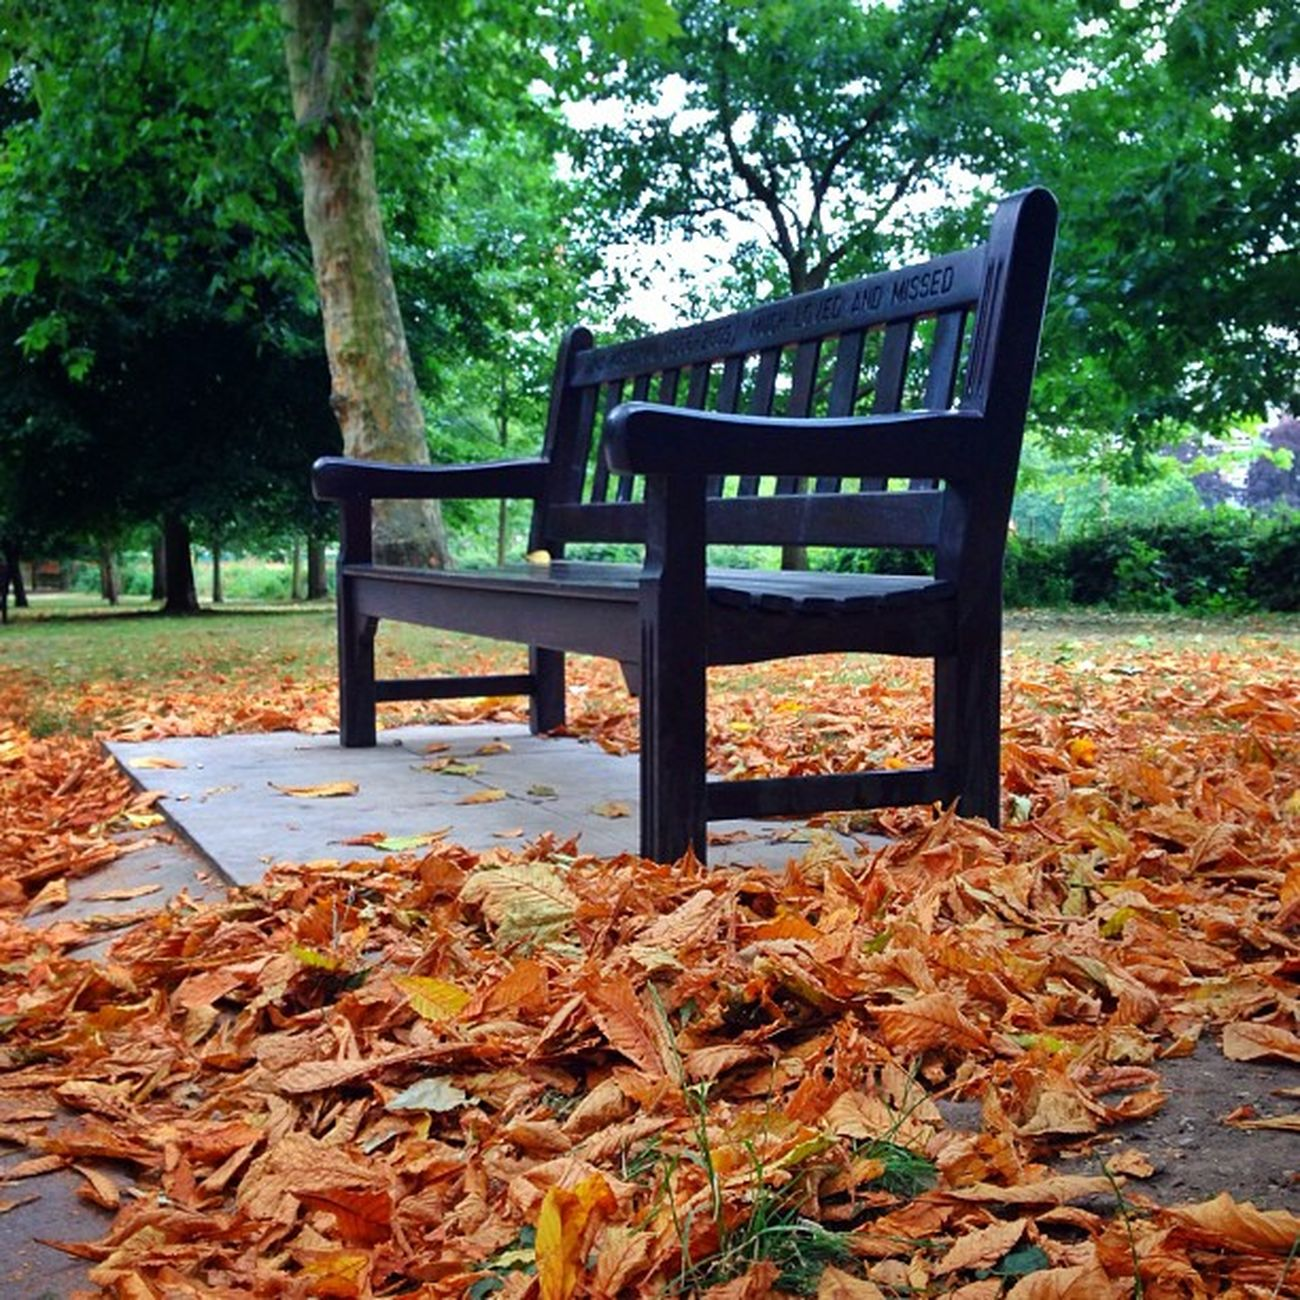 Still in time for parkbenchthursday Lovely bench in #Holland park????????#parkbenchthursday #hollandpark #alan_in_london #gf_uk #gang_family #igers_london #insta_london #london_only #thisislondon #ic_cities #ic_cities_london #ig_england #love_london #gi_u Gi_uk Igers_london Ig_england Love_london Holland Ic_cities_london Ig_london Gang_family Aauk Londonpop Allshots_ Claudialovesbenches London_only Hollandpark Ic_cities Yourturnbritain Gf_uk Alan_in_london Insta_london Parkbenchthursday Thisislondon